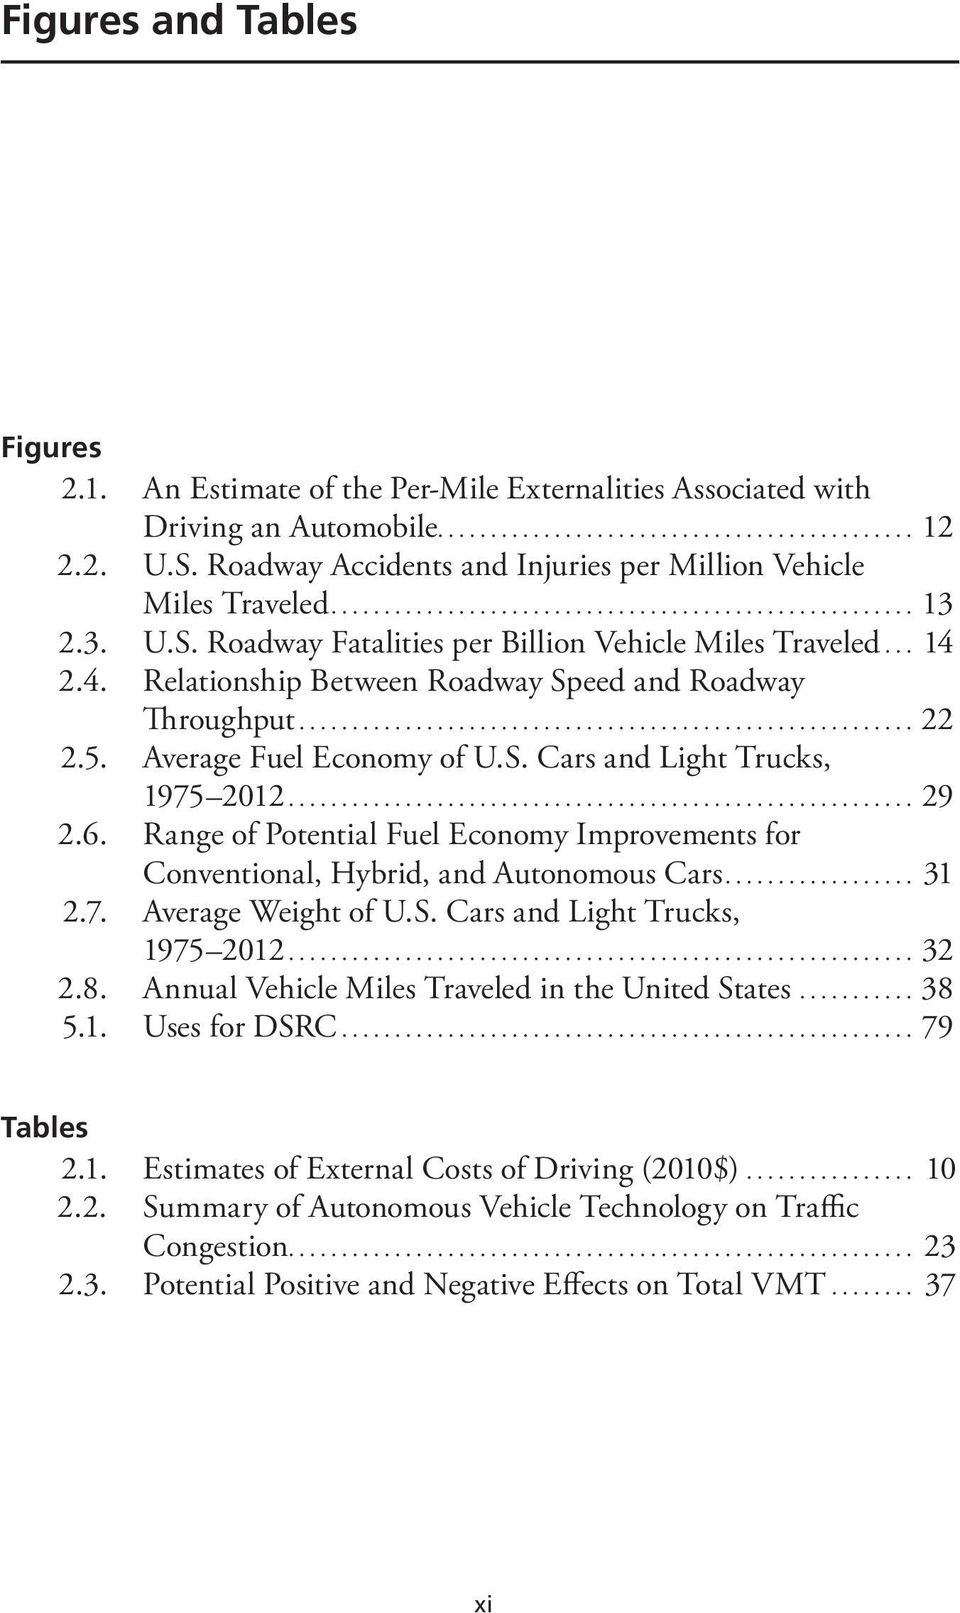 .. 29 2.6. Range of Potential Fuel Economy Improvements for Conventional, Hybrid, and Autonomous Cars... 31 2.7. Average Weight of U.S. Cars and Light Trucks, 1975 2012... 32 2.8.